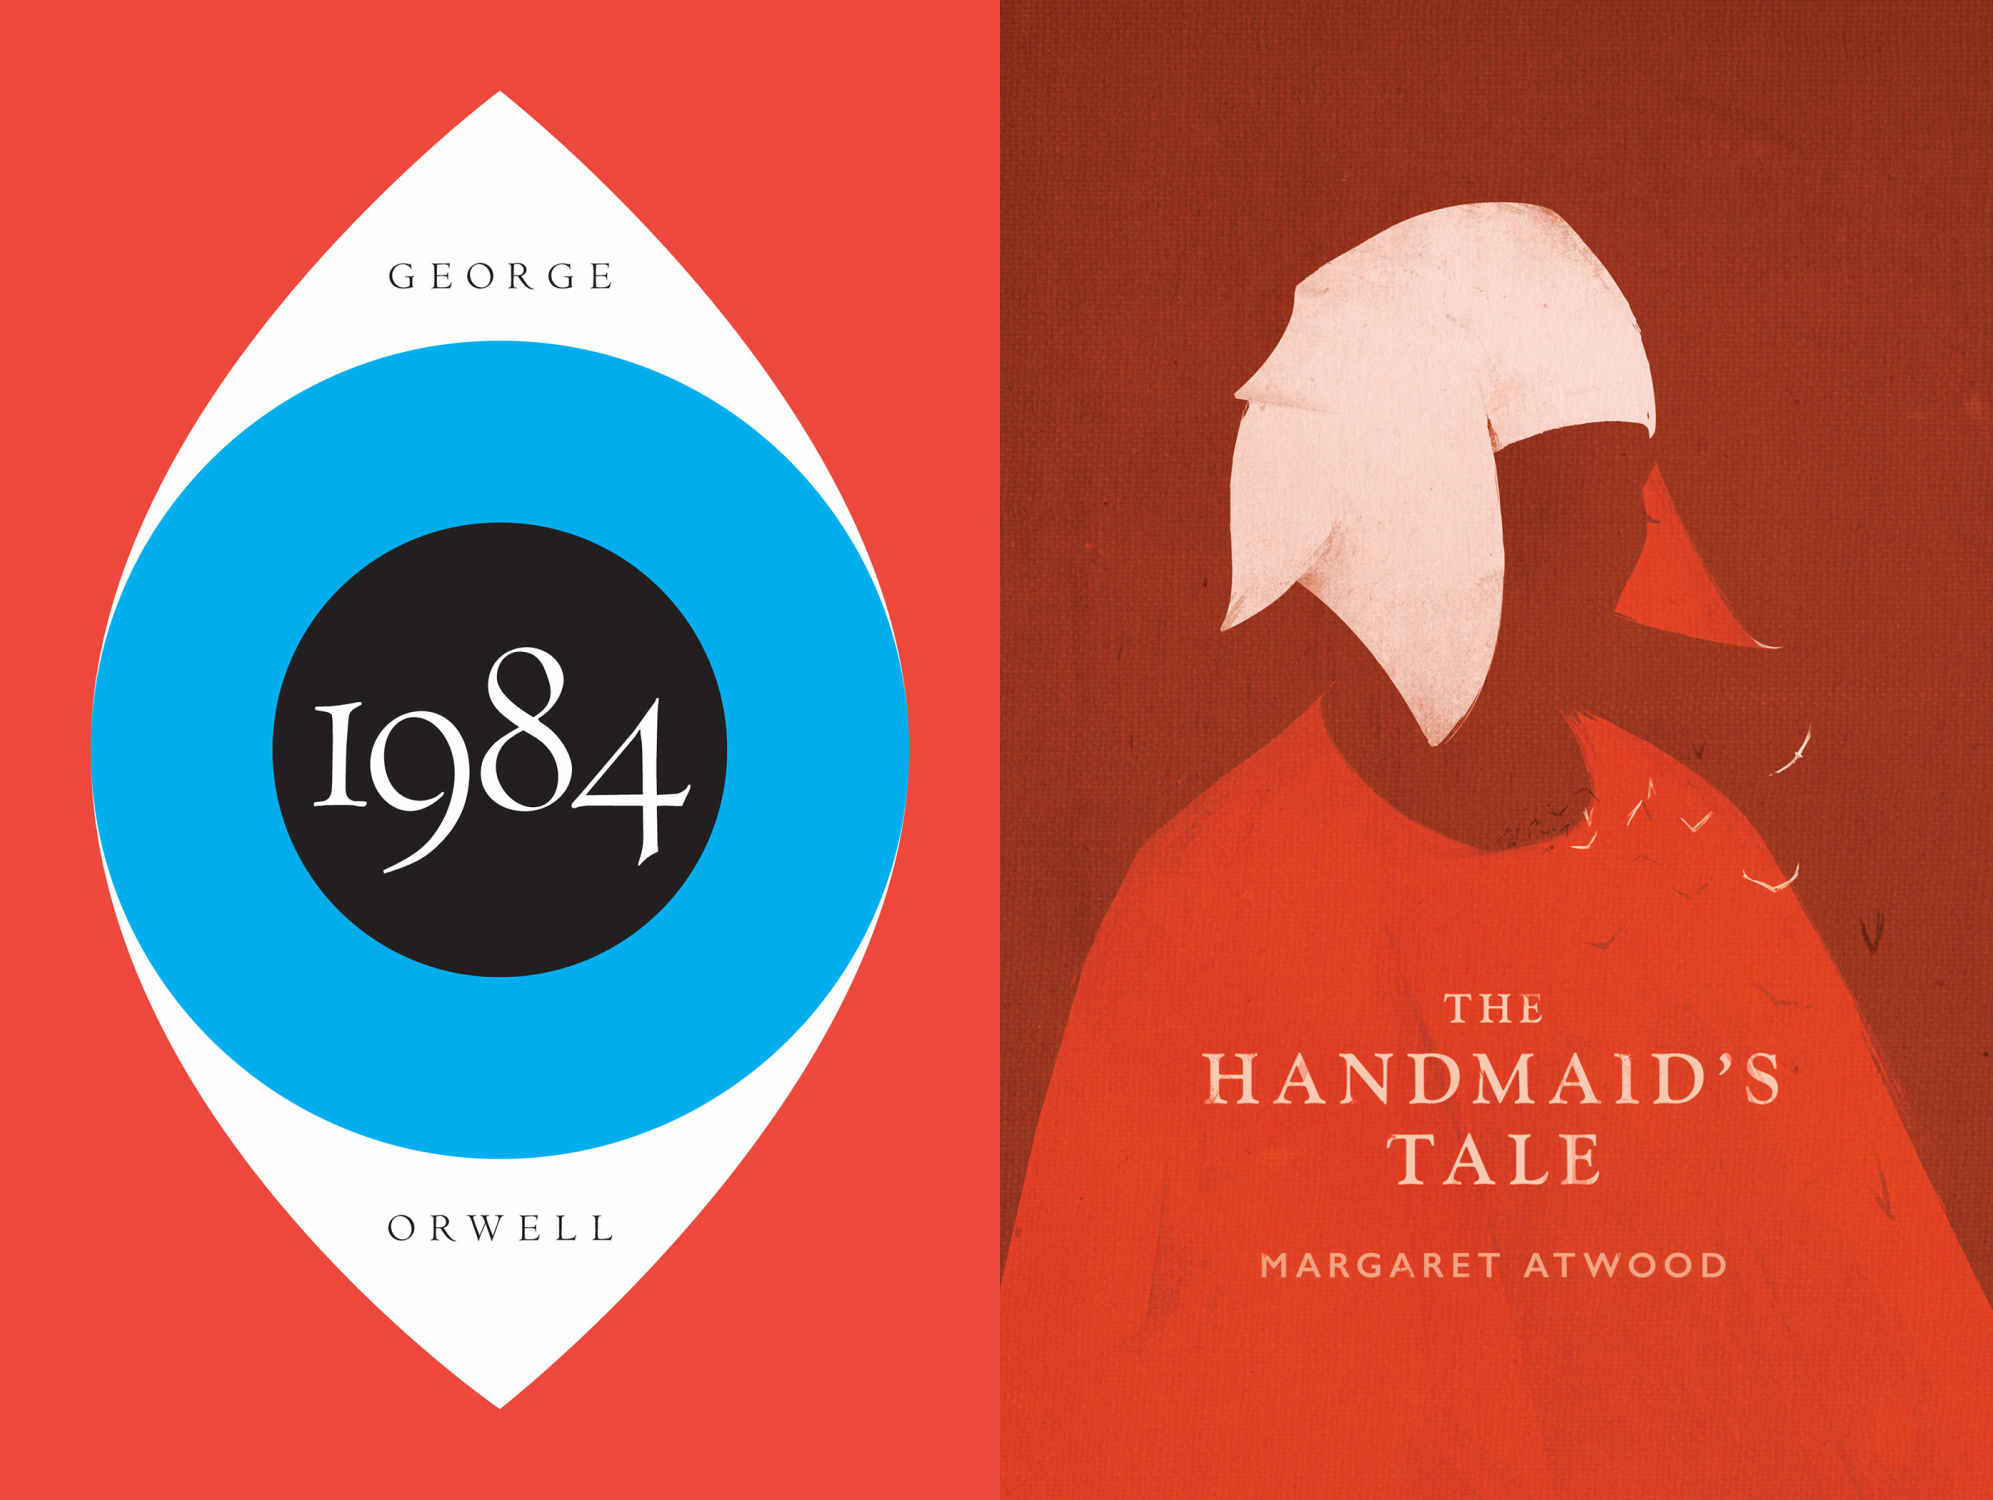 1984 handmaids tale essay A comparison of the social and political institution attacks in the dystopian fiction 1984 and the handmaids tale pages 2 words 1,097 view full essay both margaret attwood's the handmaids tale and george orwell's 1984 are dystopian novels, the genre dystopia has been described as speculative fiction due.